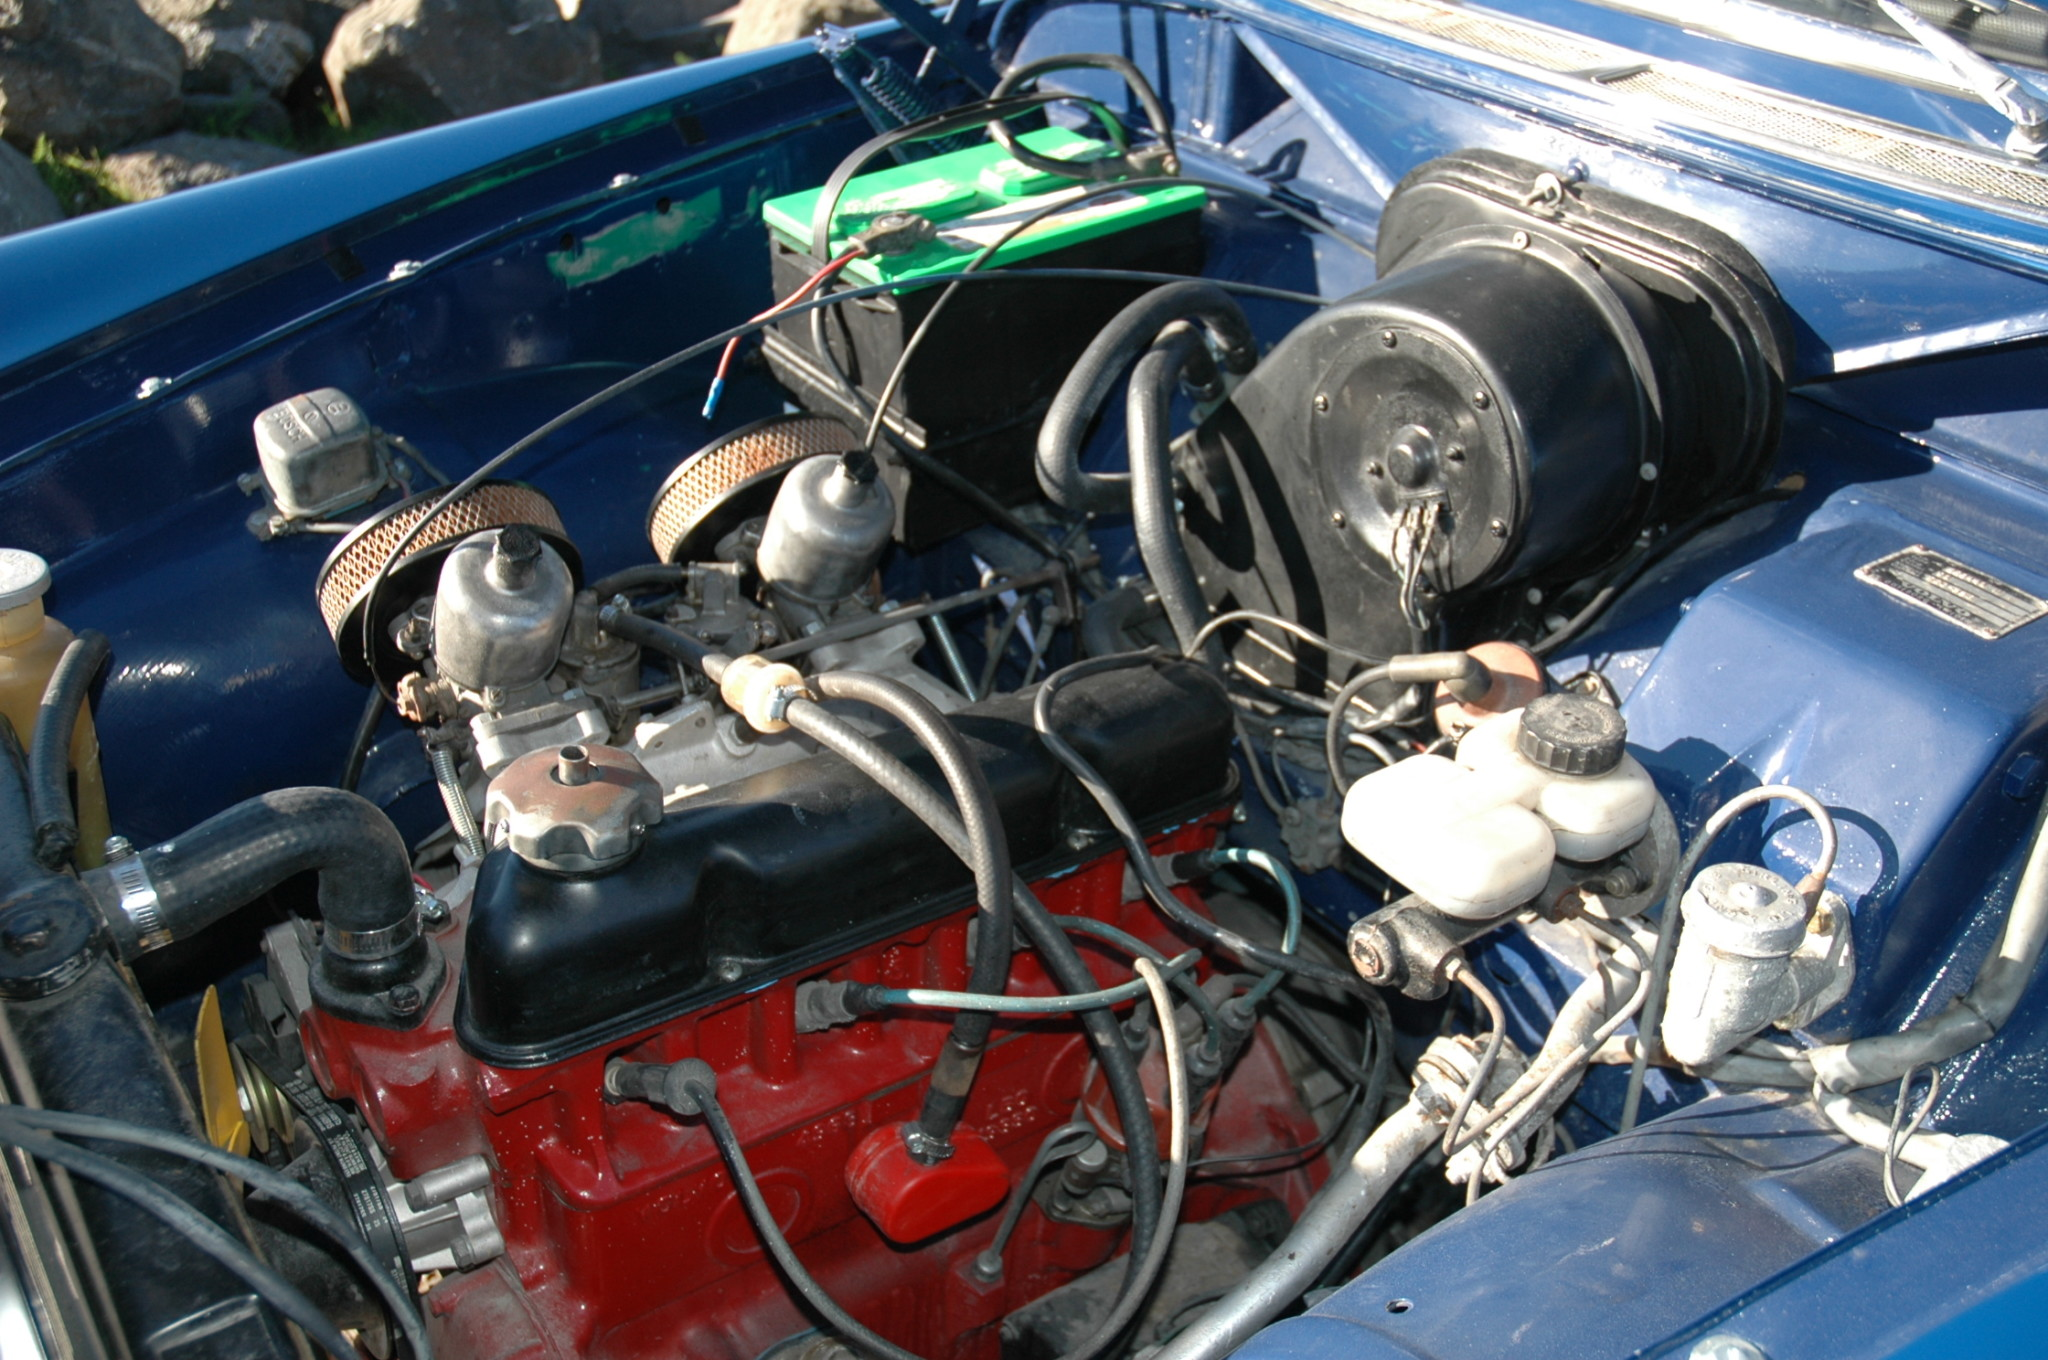 1967 Volvo 122S Wagon engine